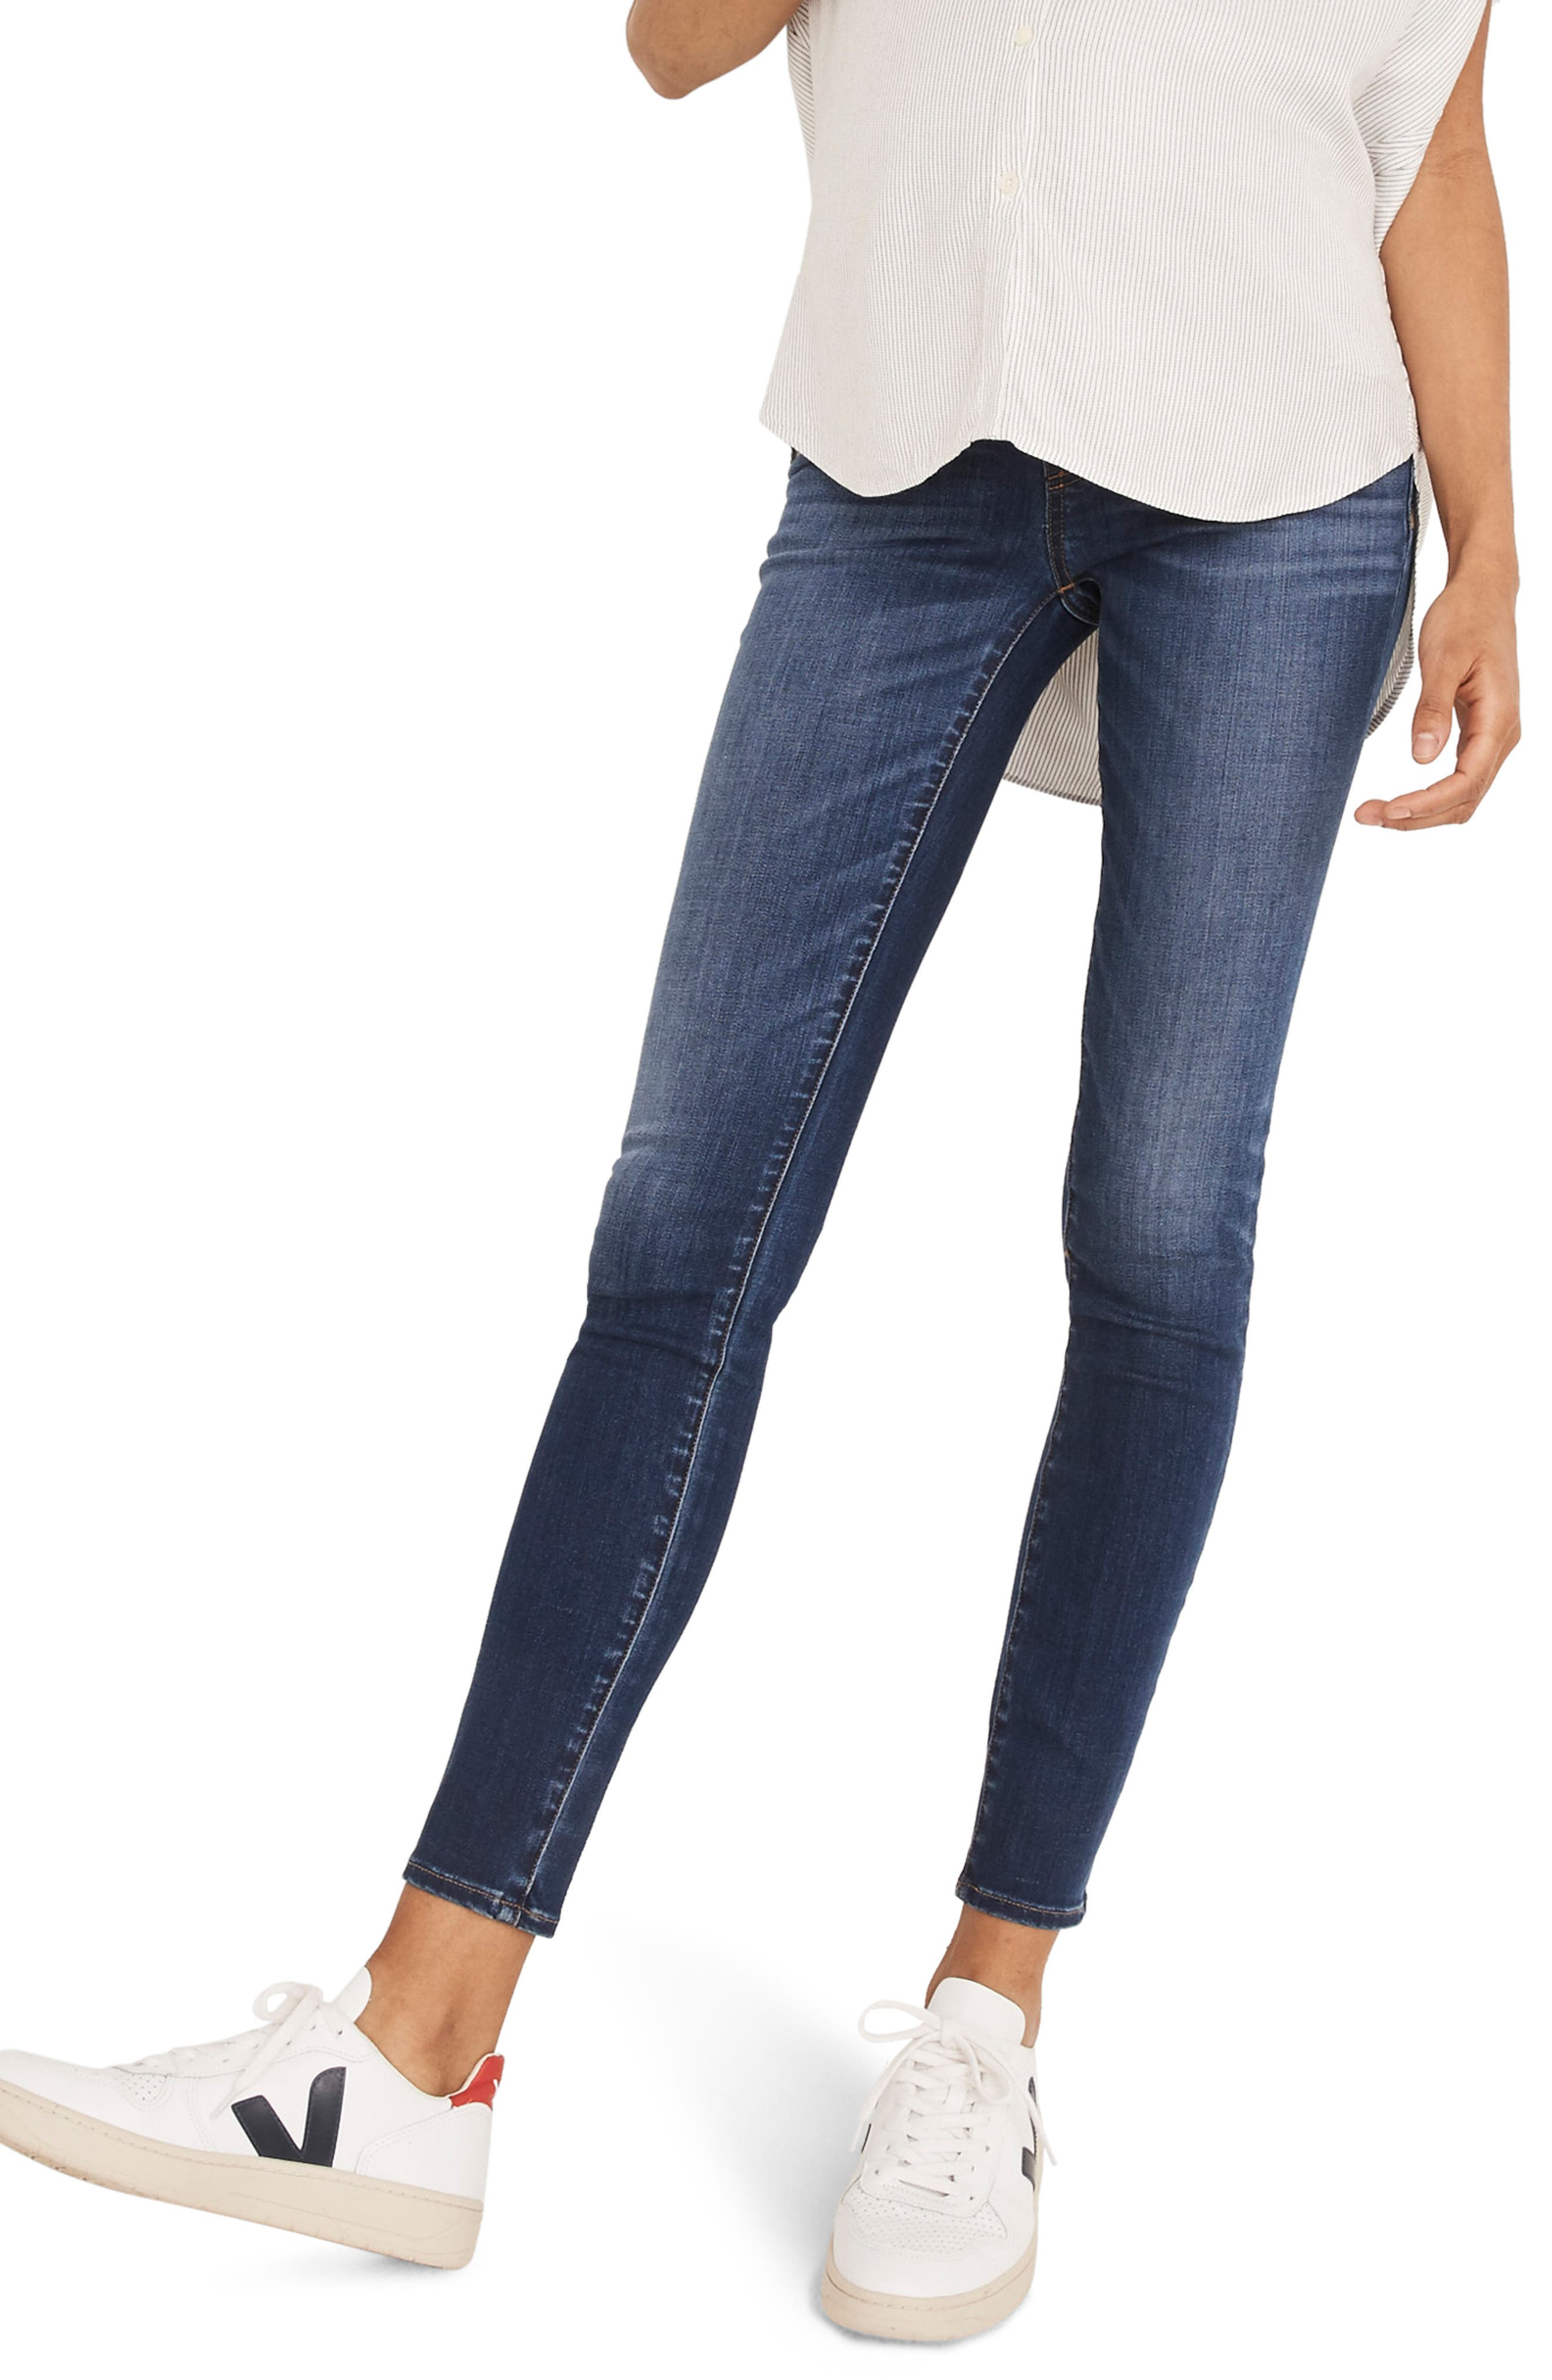 Women's Madewell Maternity Skinny Jeans